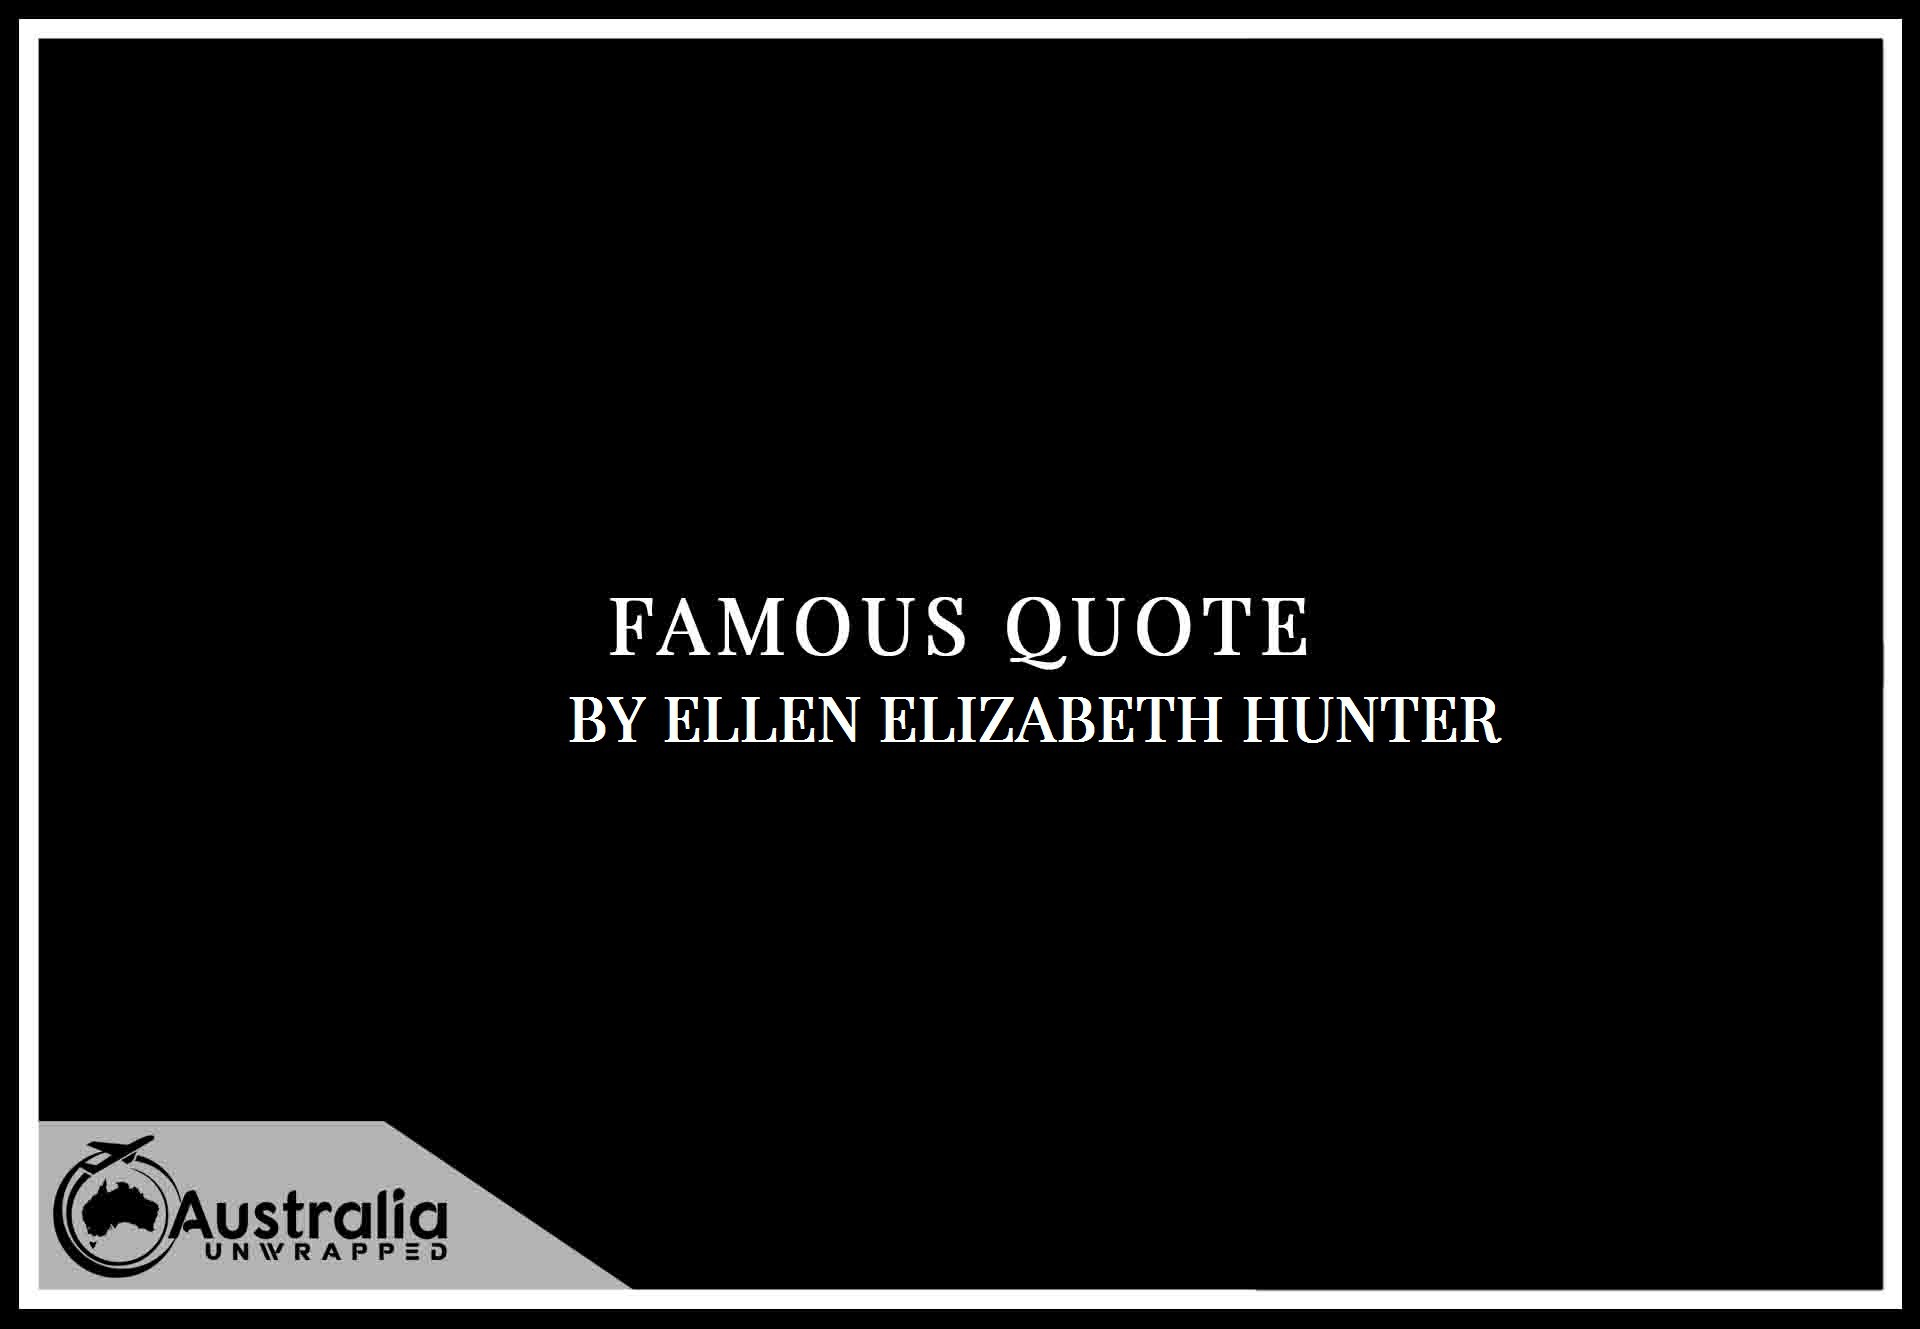 Ellen Elizabeth Hunter's Top 1 Popular and Famous Quotes